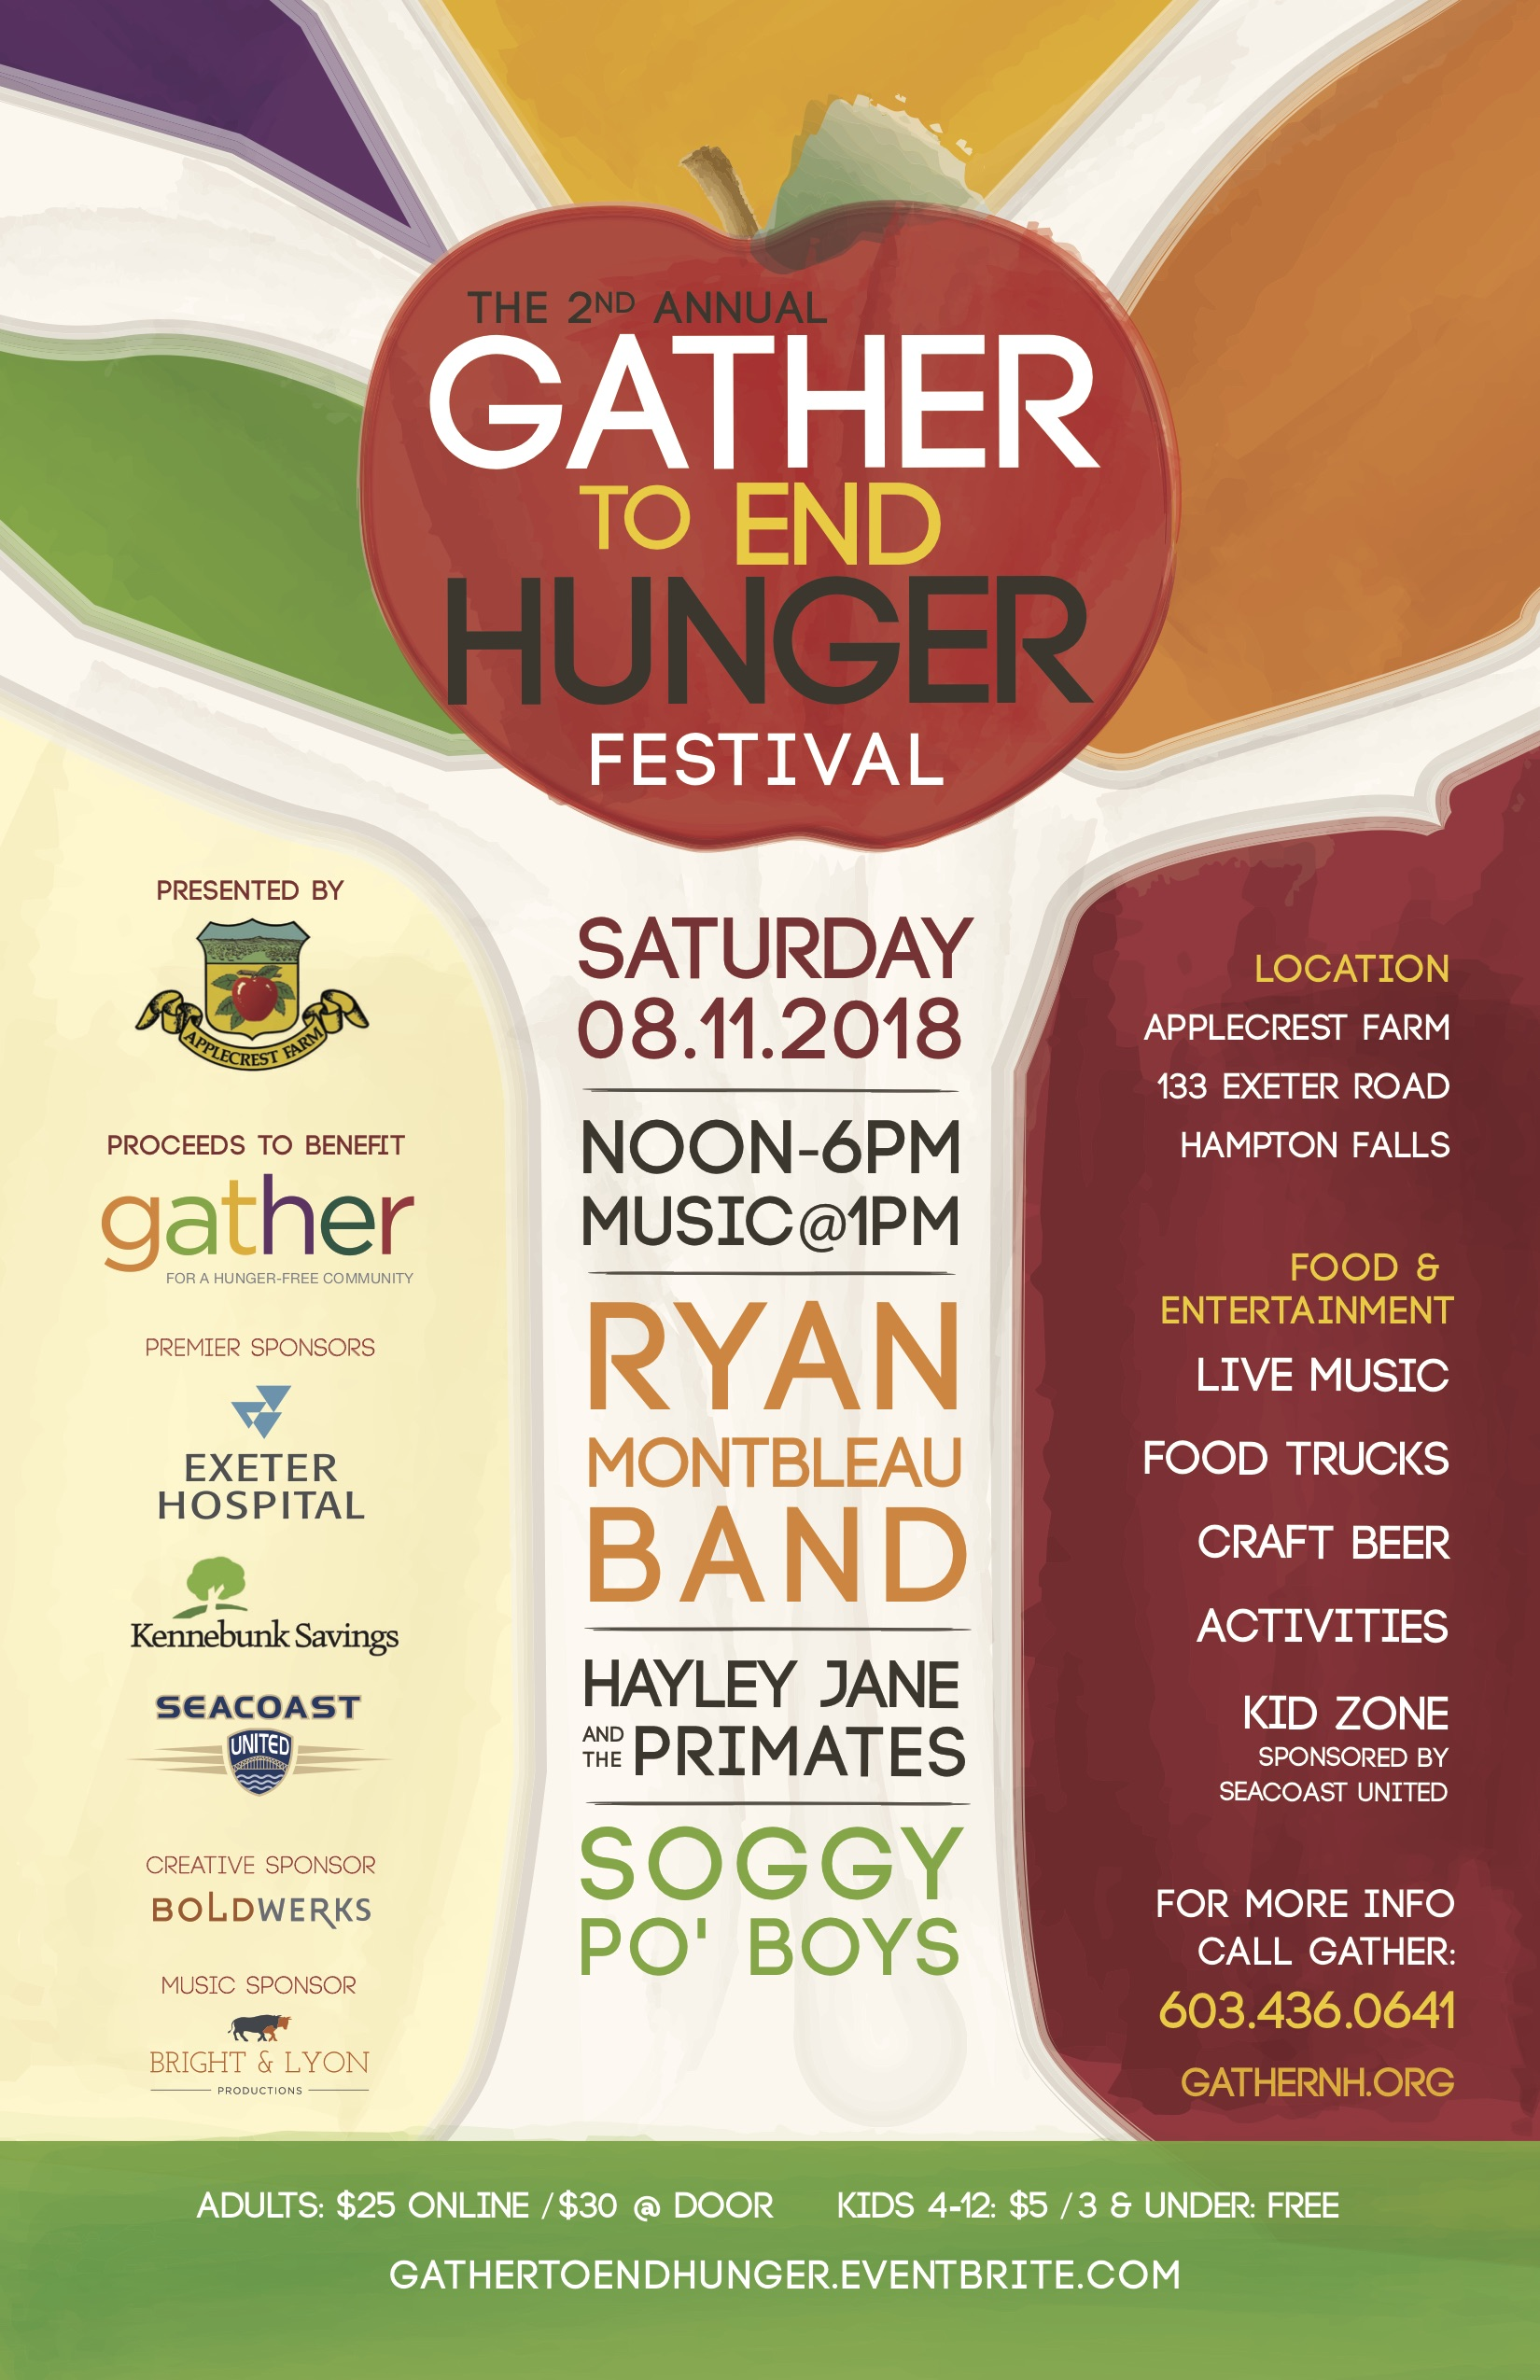 gather-poster-new2018-3 copy.jpg